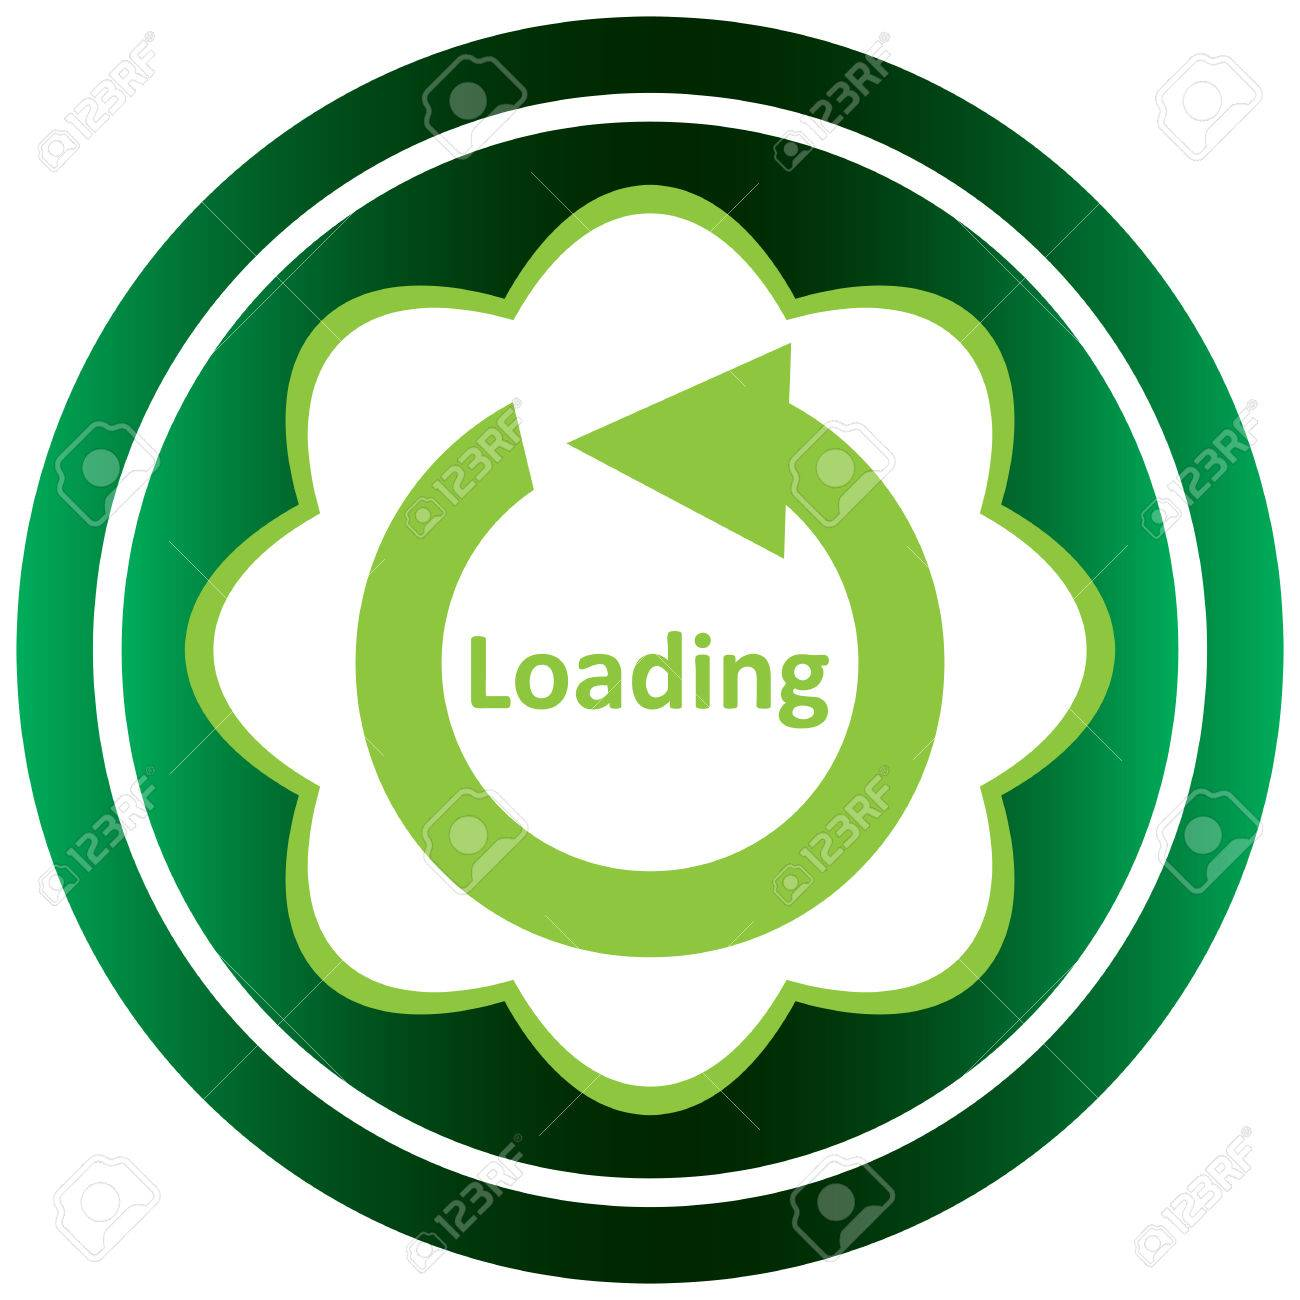 Green icon with a loading symbol on white royalty free cliparts green icon with a loading symbol on white stock vector 57116384 biocorpaavc Image collections